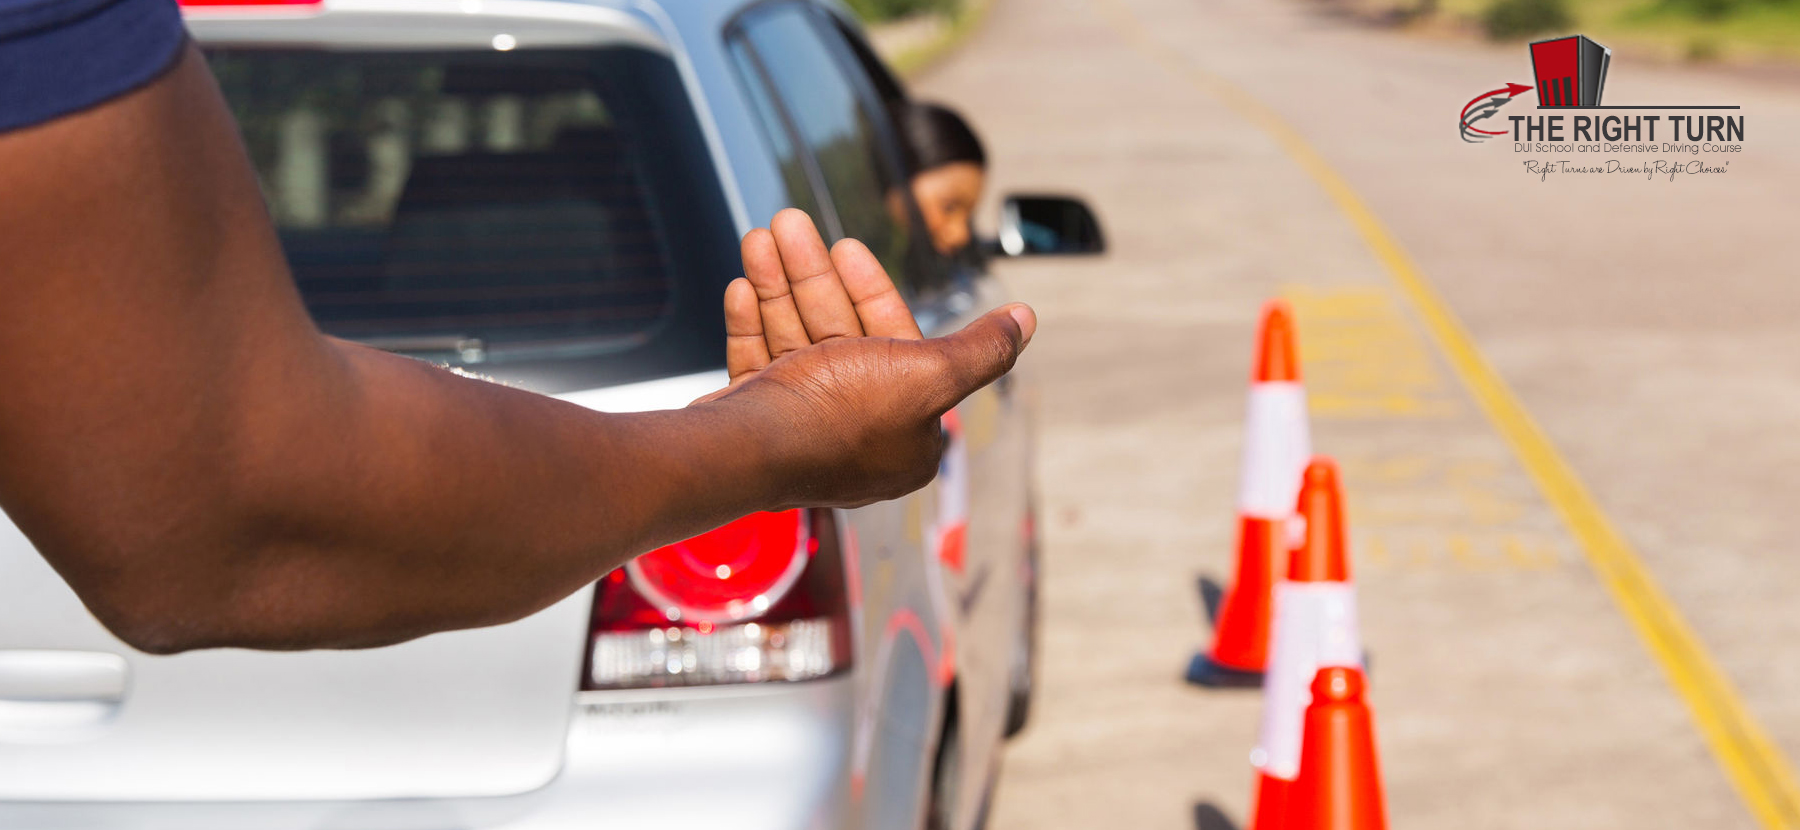 The Right Turn DUI Defensive Driving School